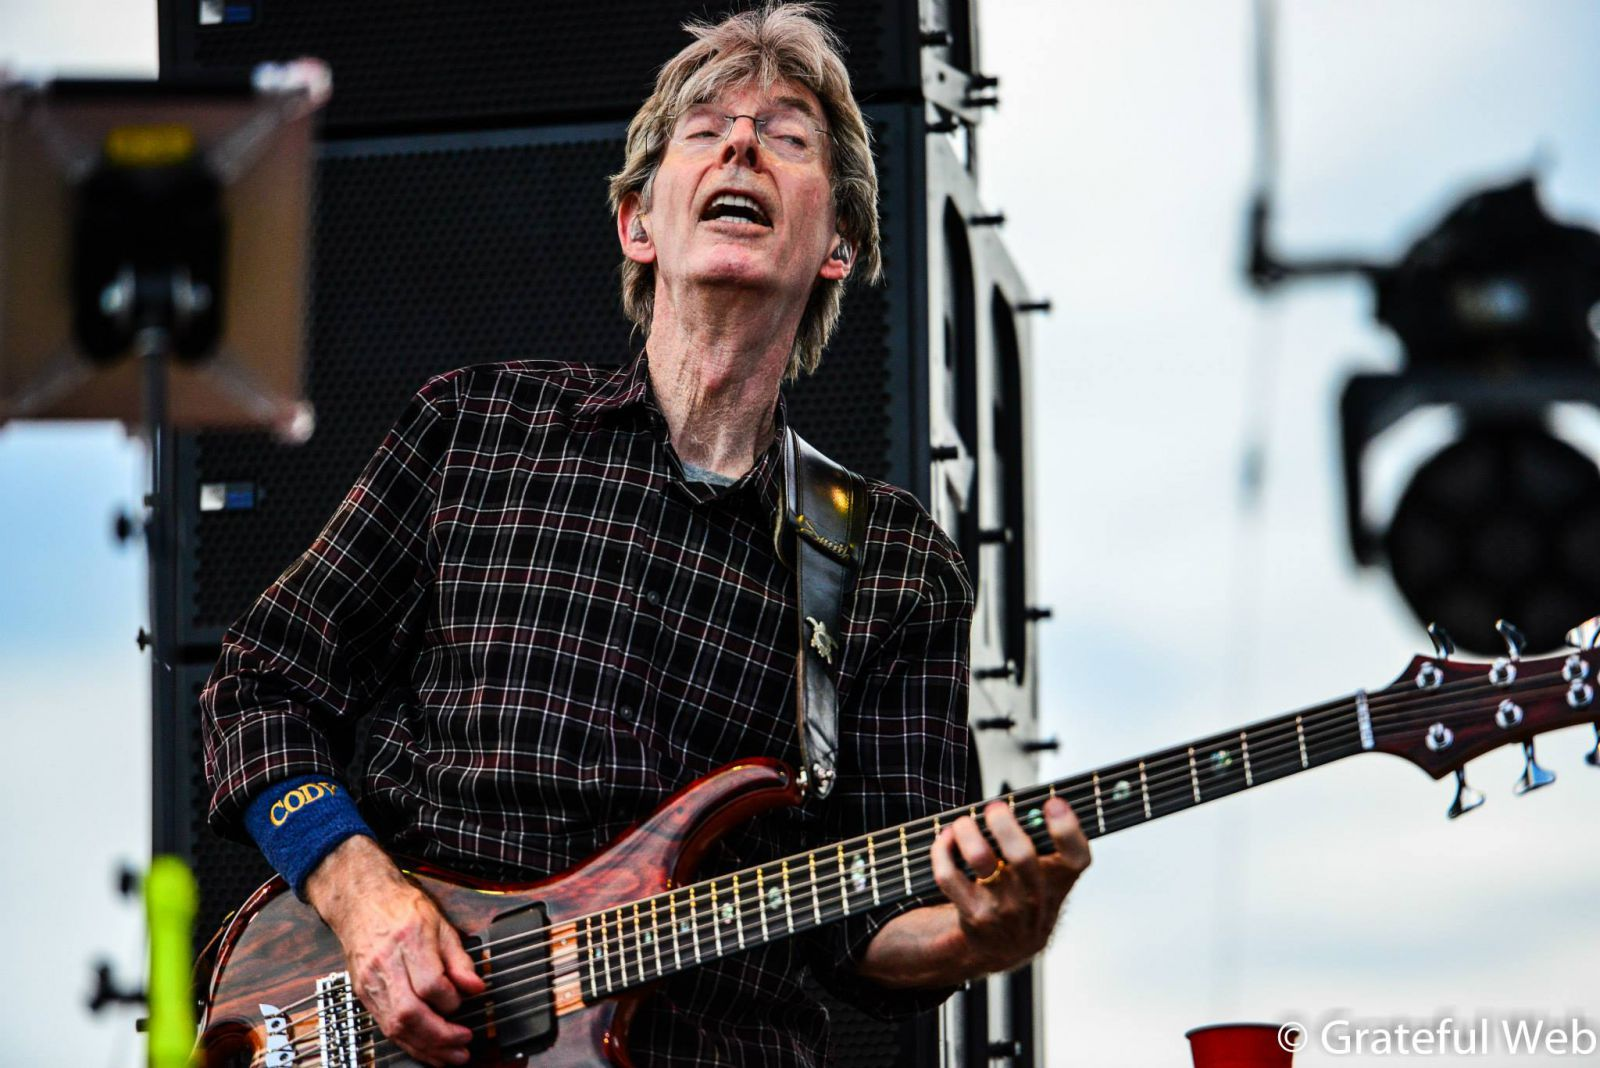 LOCKN' announces 8th annual event to celebrate Phil Lesh's 80th birthday